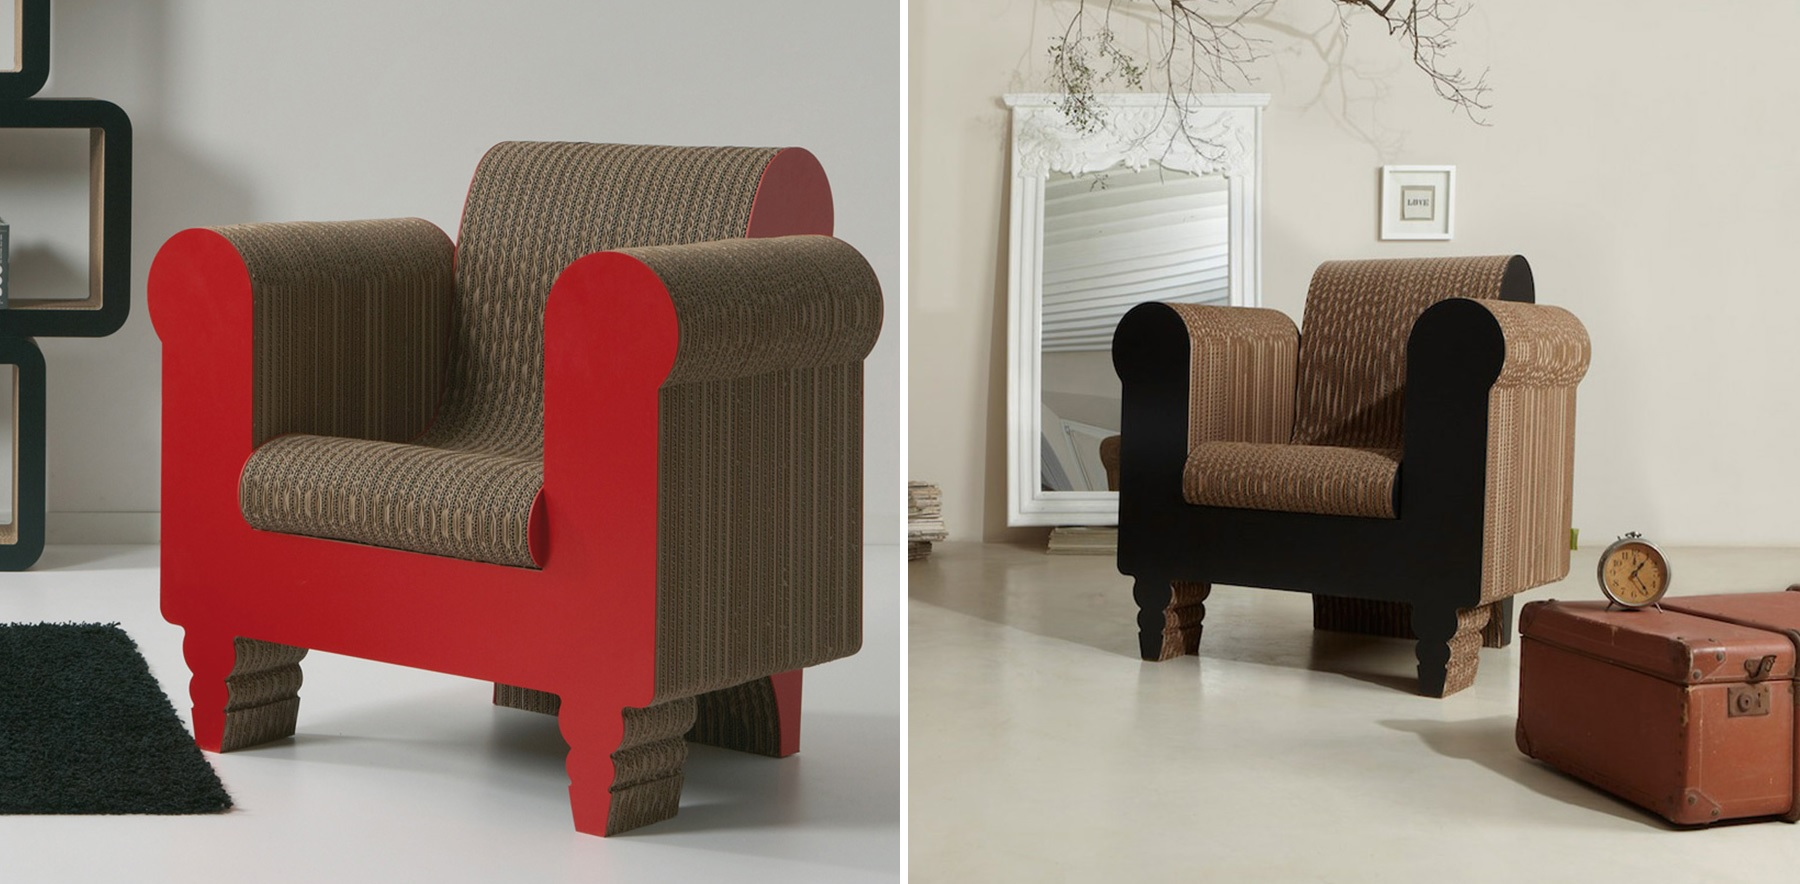 the comfortable chair store my event covers cardboard furniture - surprisingly strong and unexpectedly stylish